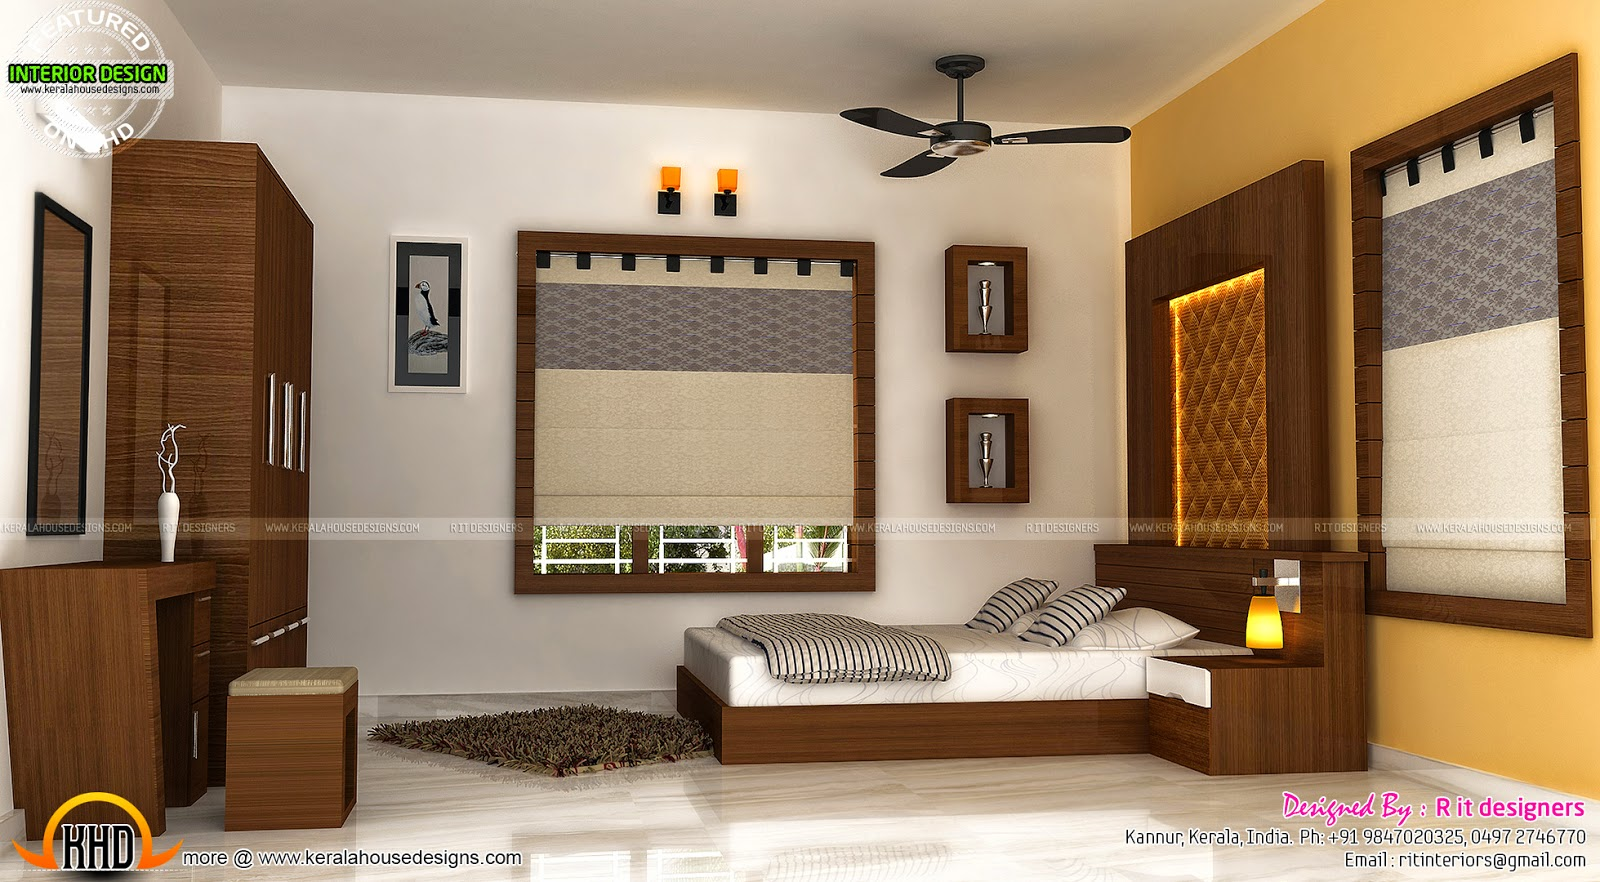 Staircase bedroom dining interiors kerala home design for Interior designs com